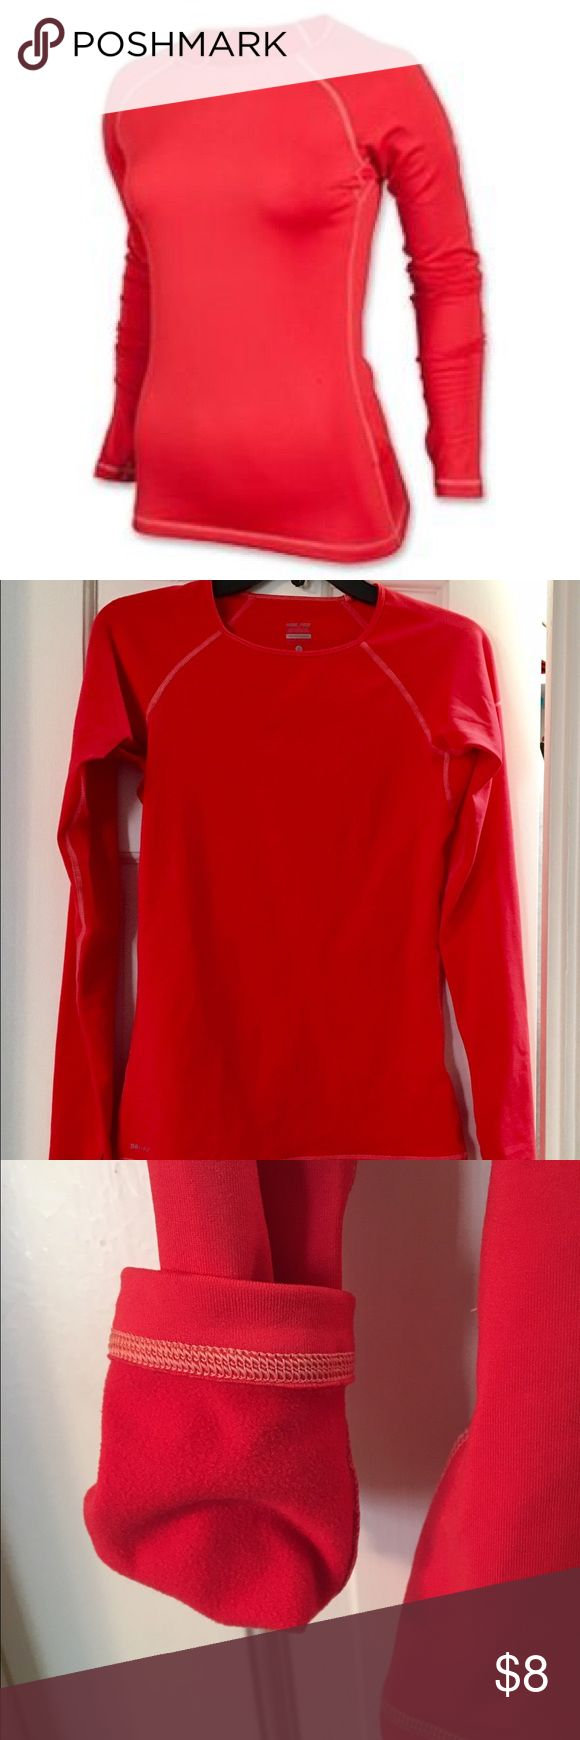 Nike Pro dri fit red long sleeve top size Small Nike Pro Dri fit insulated bright red long sleeve top size Small Nike Tops Tees - Long Sleeve